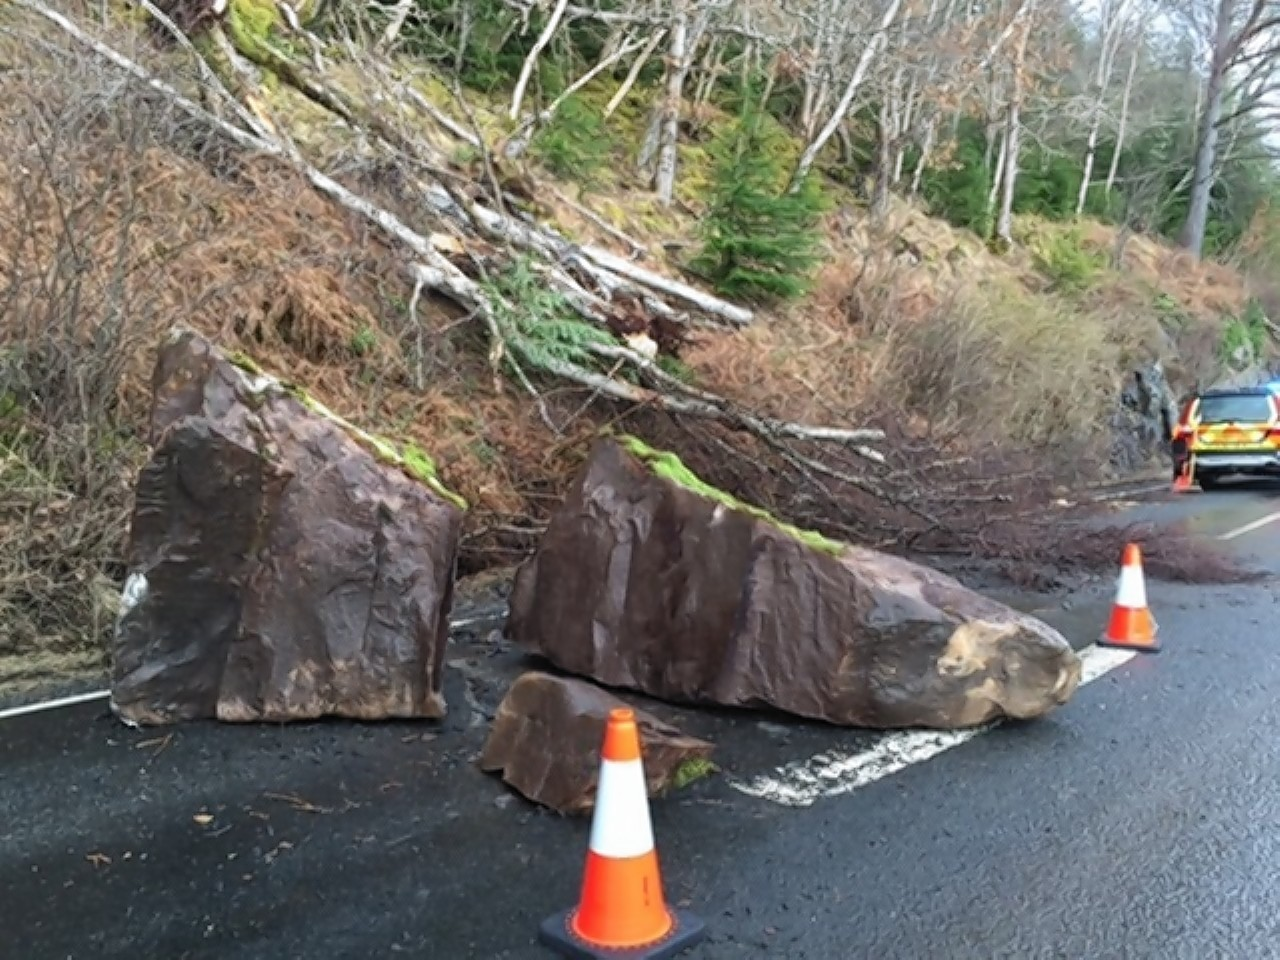 The rocks fell on Thursday but the road will remain closed throughout the weekend